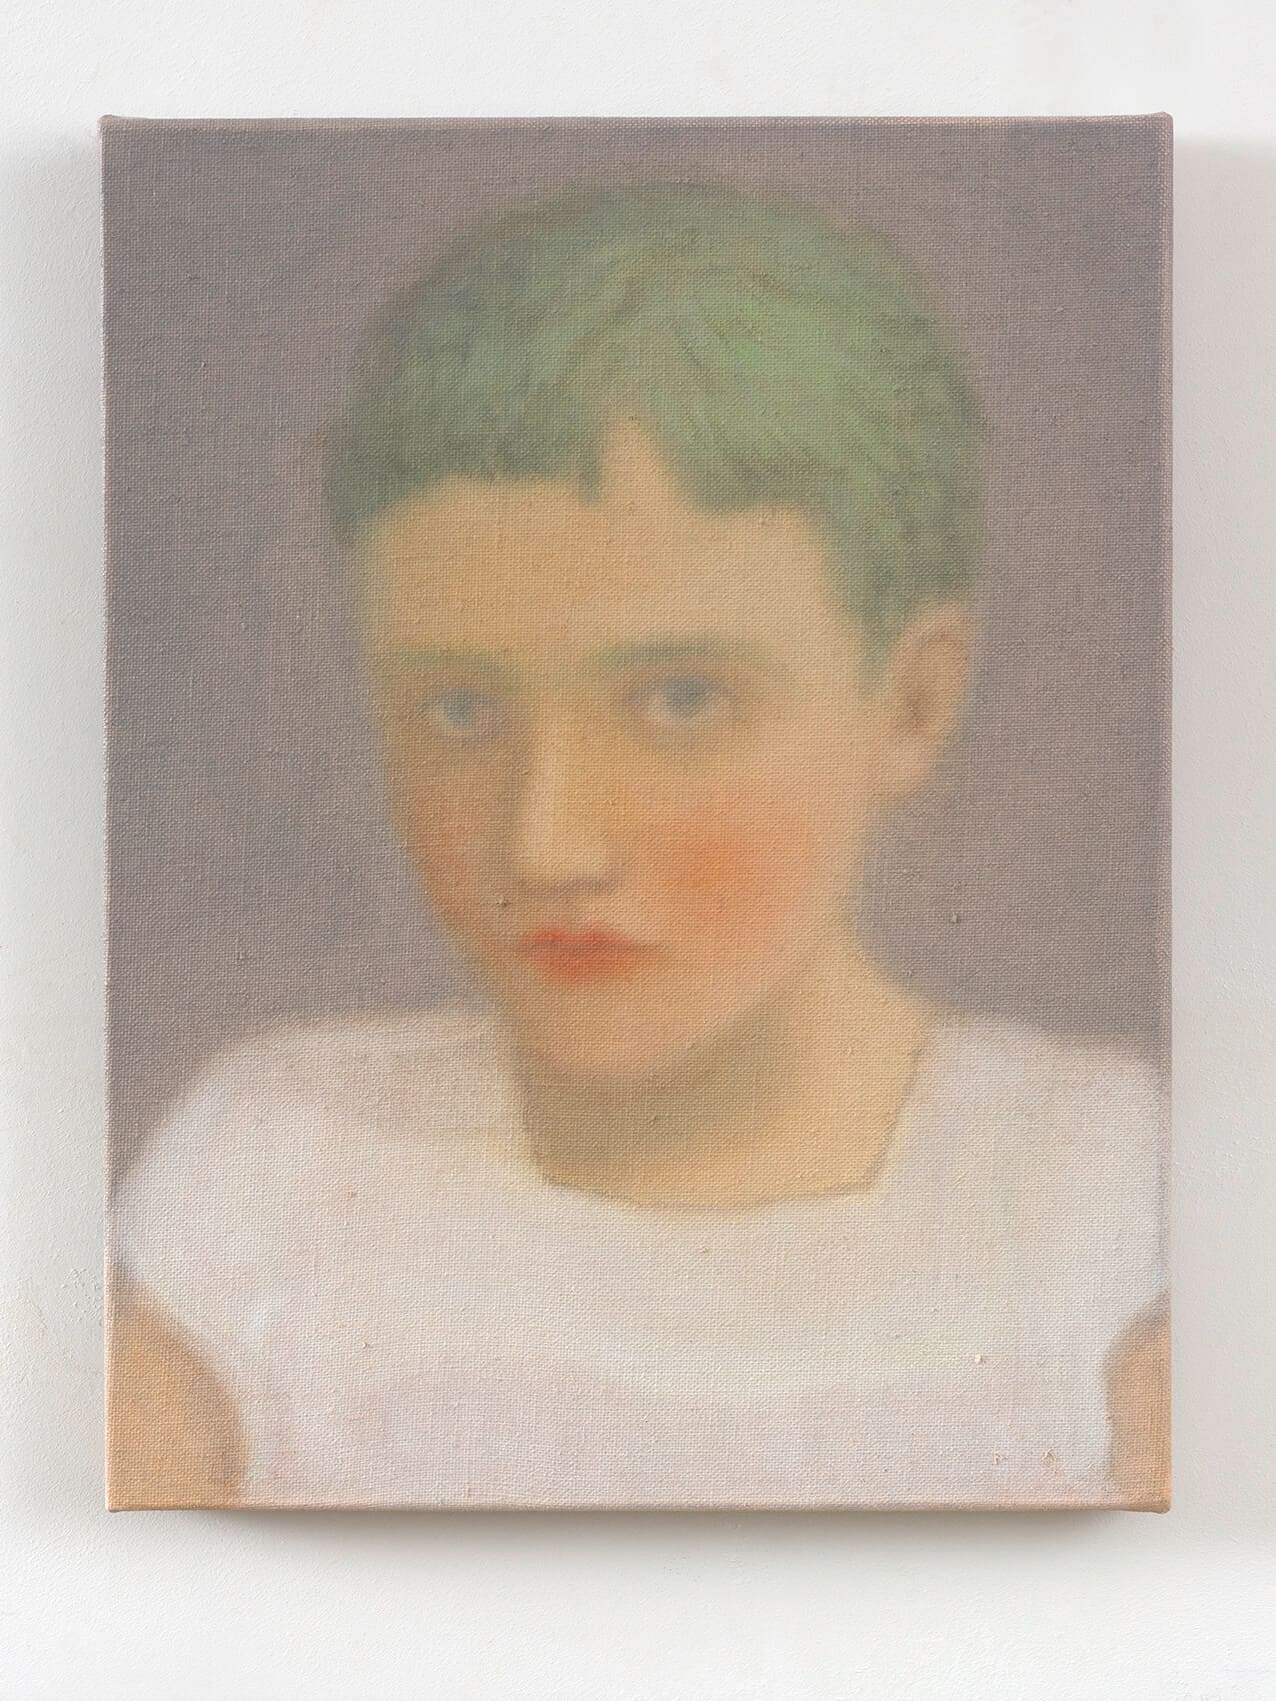 Chechu Álava, Rebel Kid, 2019. Oil on Canvas, 35 x 27cm. Courtesy of the artist & SMAC Gallery.